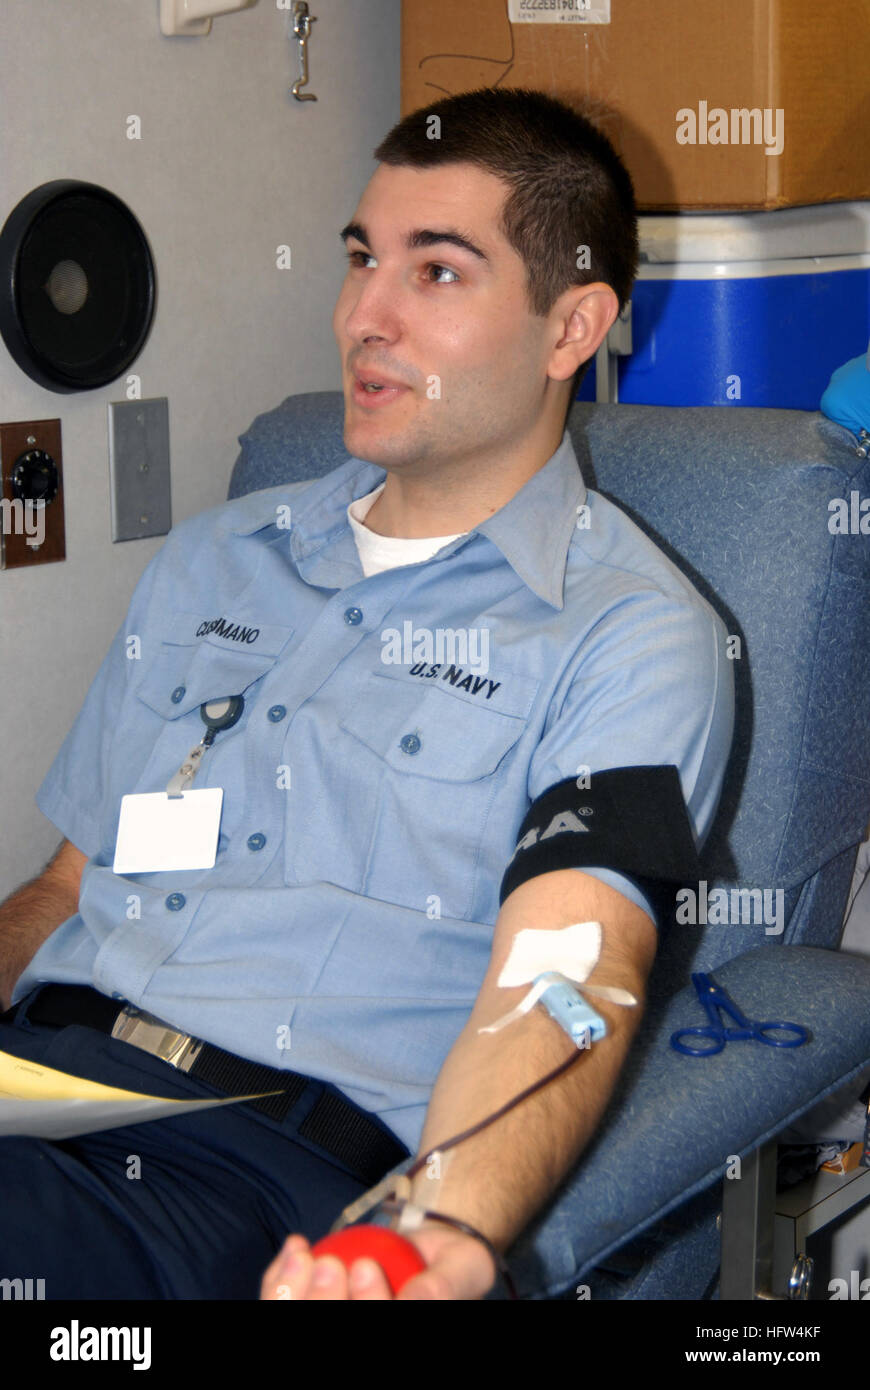 071219-N-1981M-069 NEWPORT NEWS, Va. (Dec. 19, 2007) Aviation Ordnanceman Airman Apprentice Chris J. Cusumano, of - Stock Image